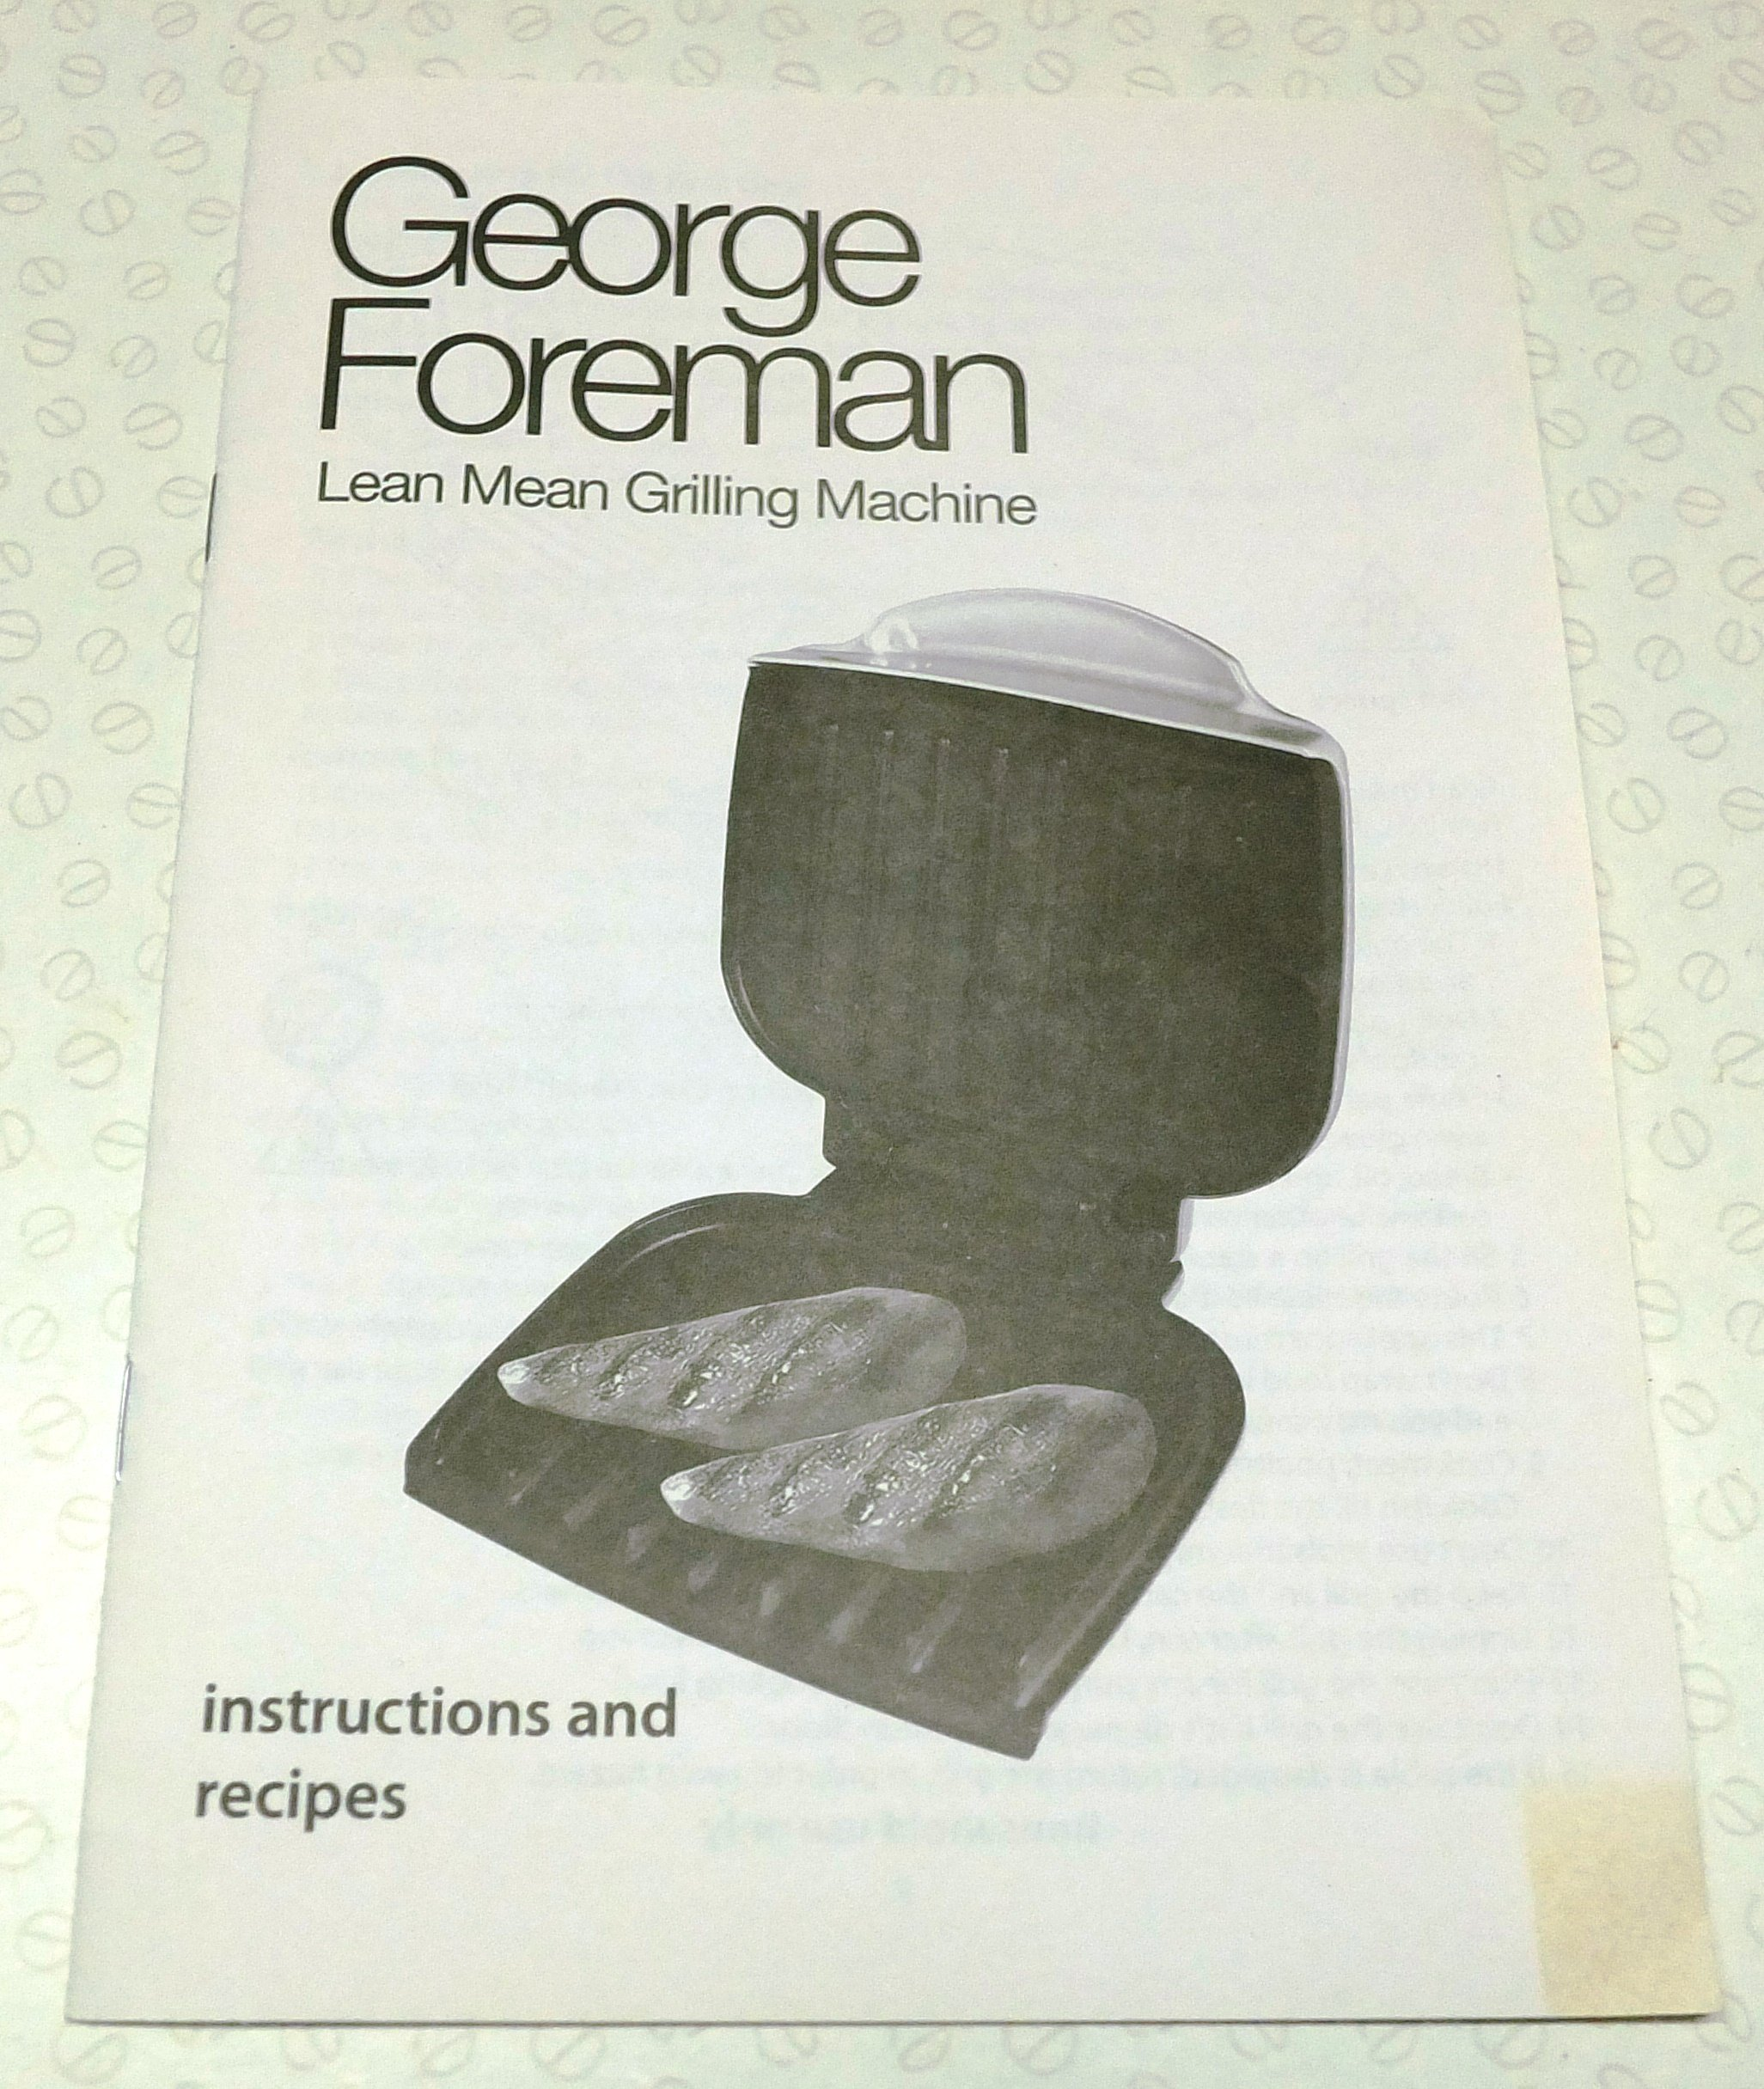 George Foreman Lean Mean Grilling Machine Instructions And Recipes